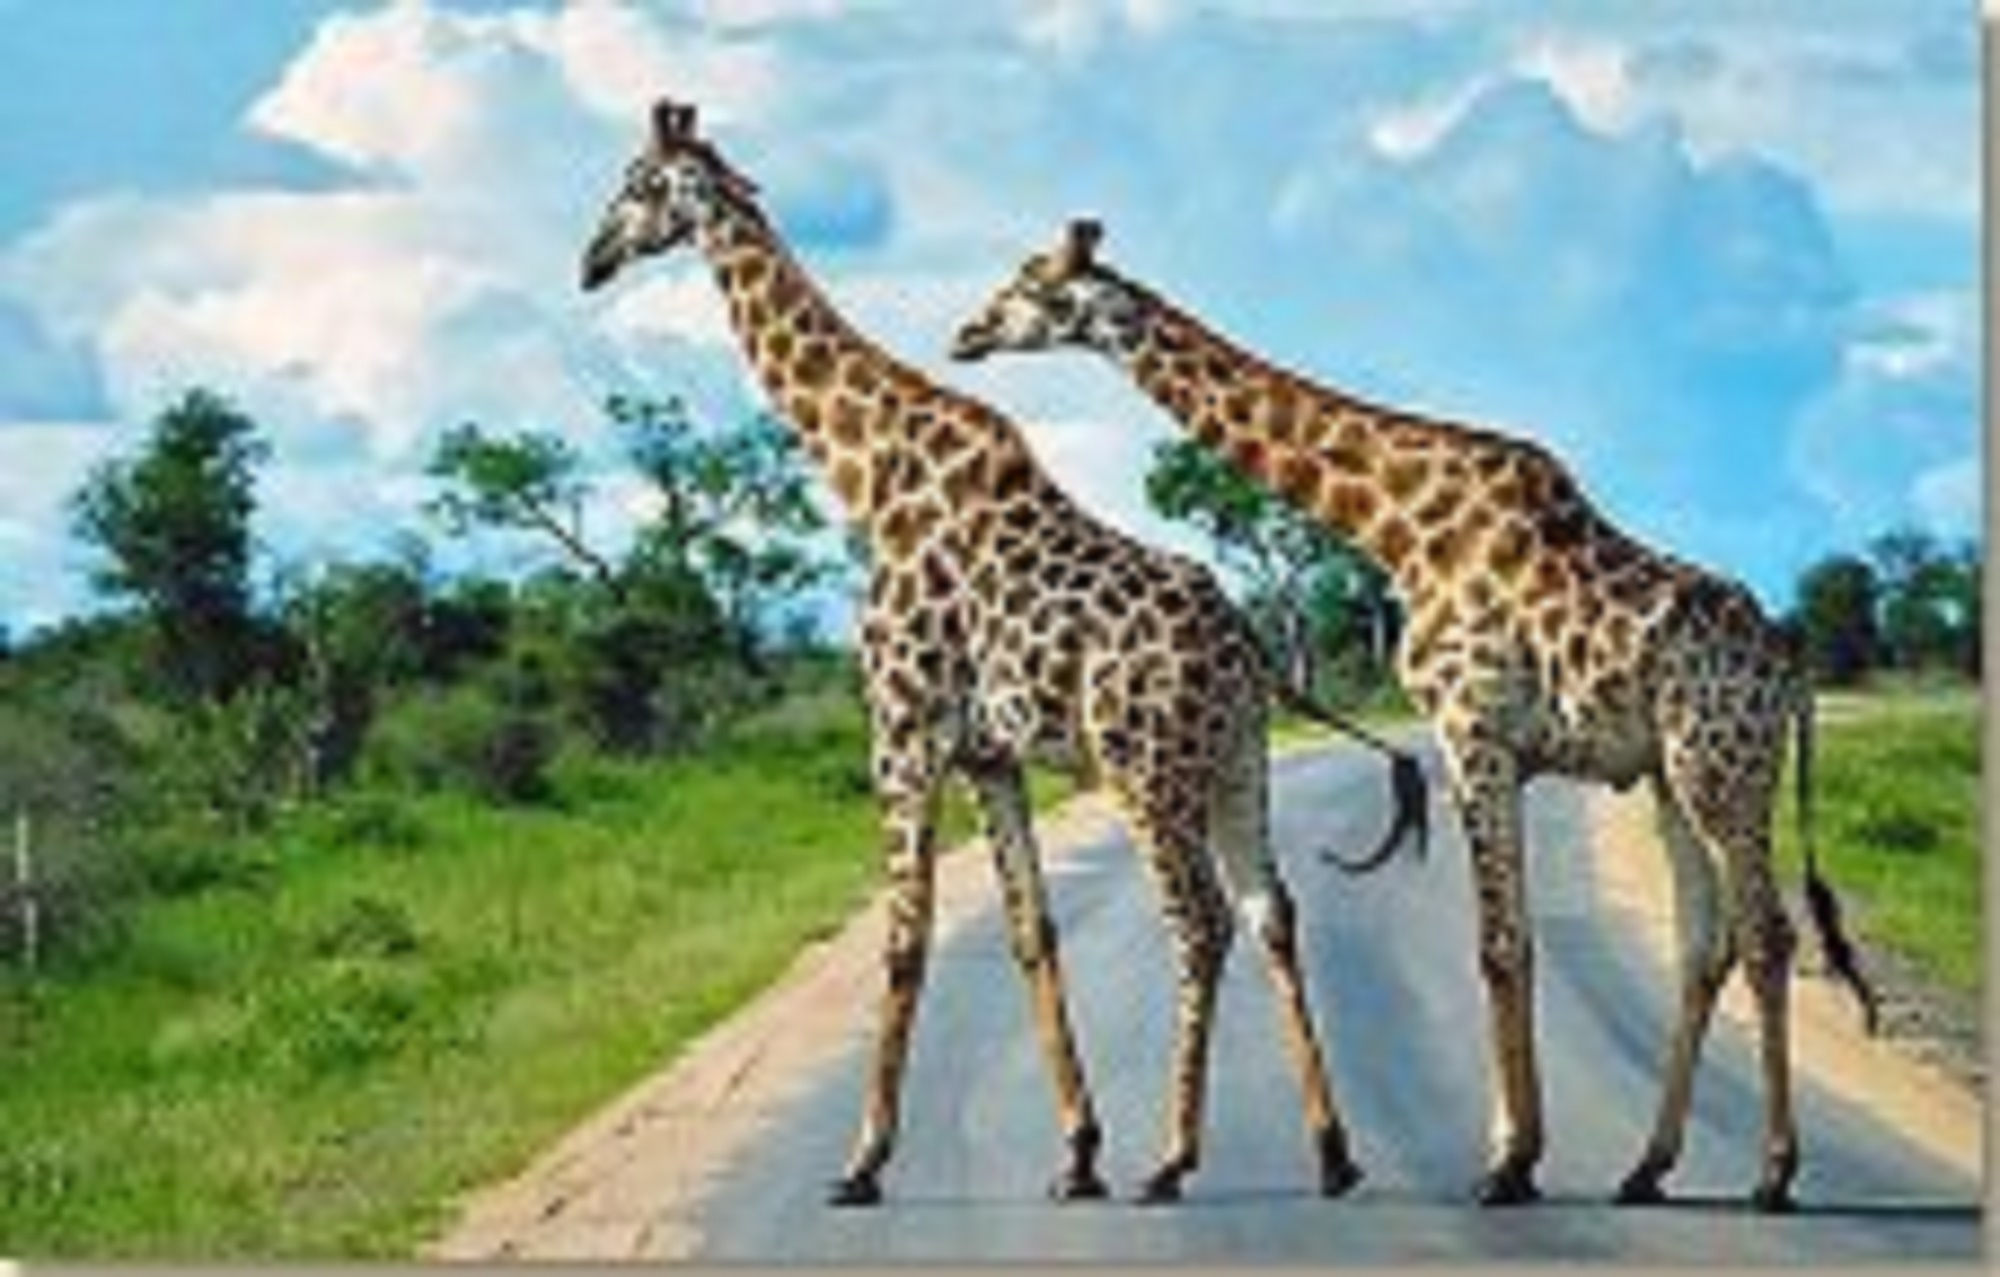 South African safaris in the Kruger National Park